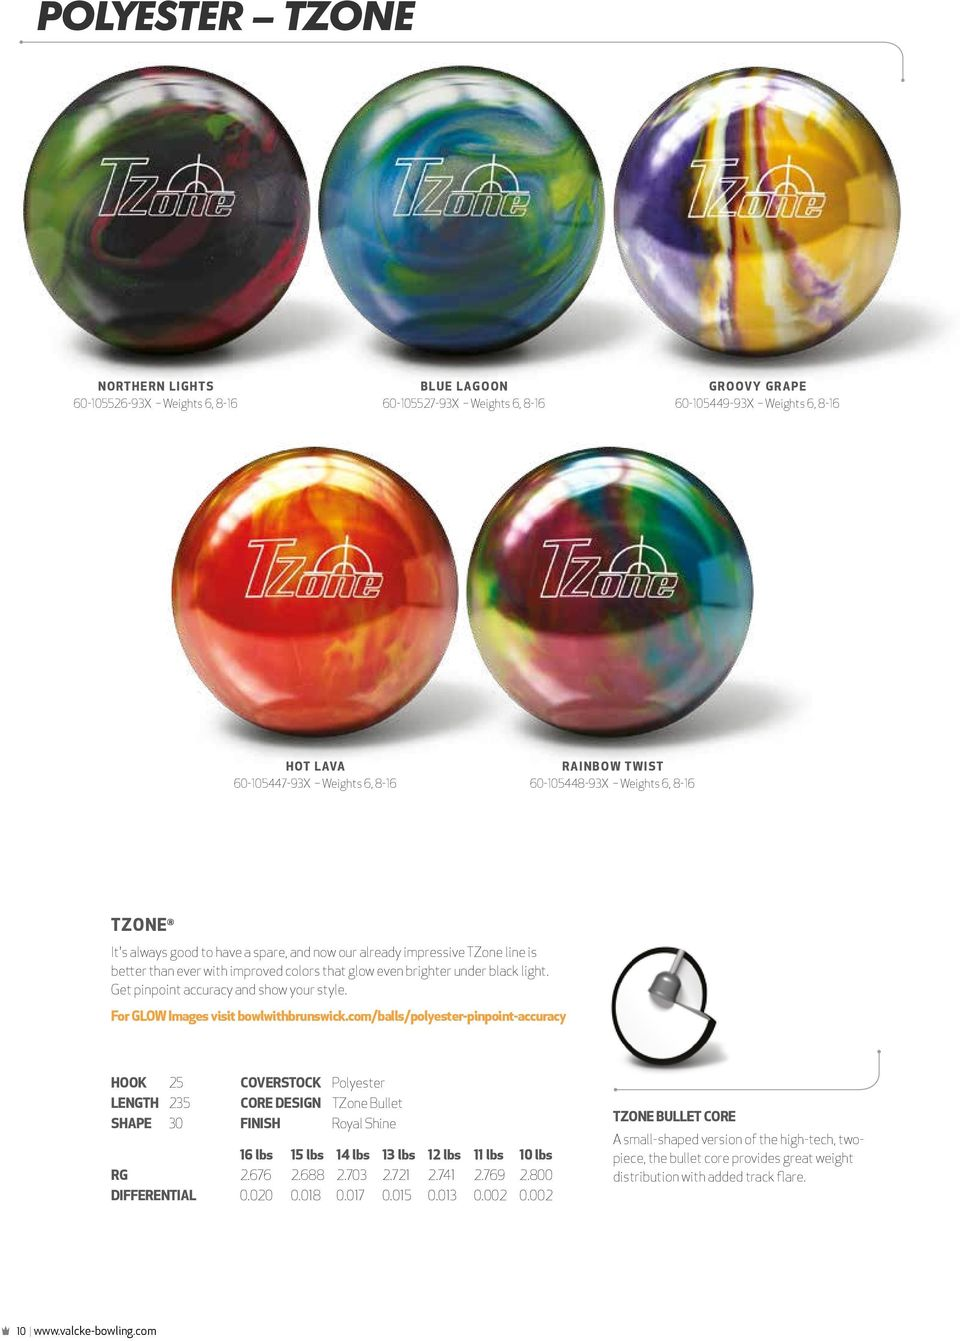 Get pinpoint accuracy and show your style. For GLOW Images visit bowlwithbrunswick.